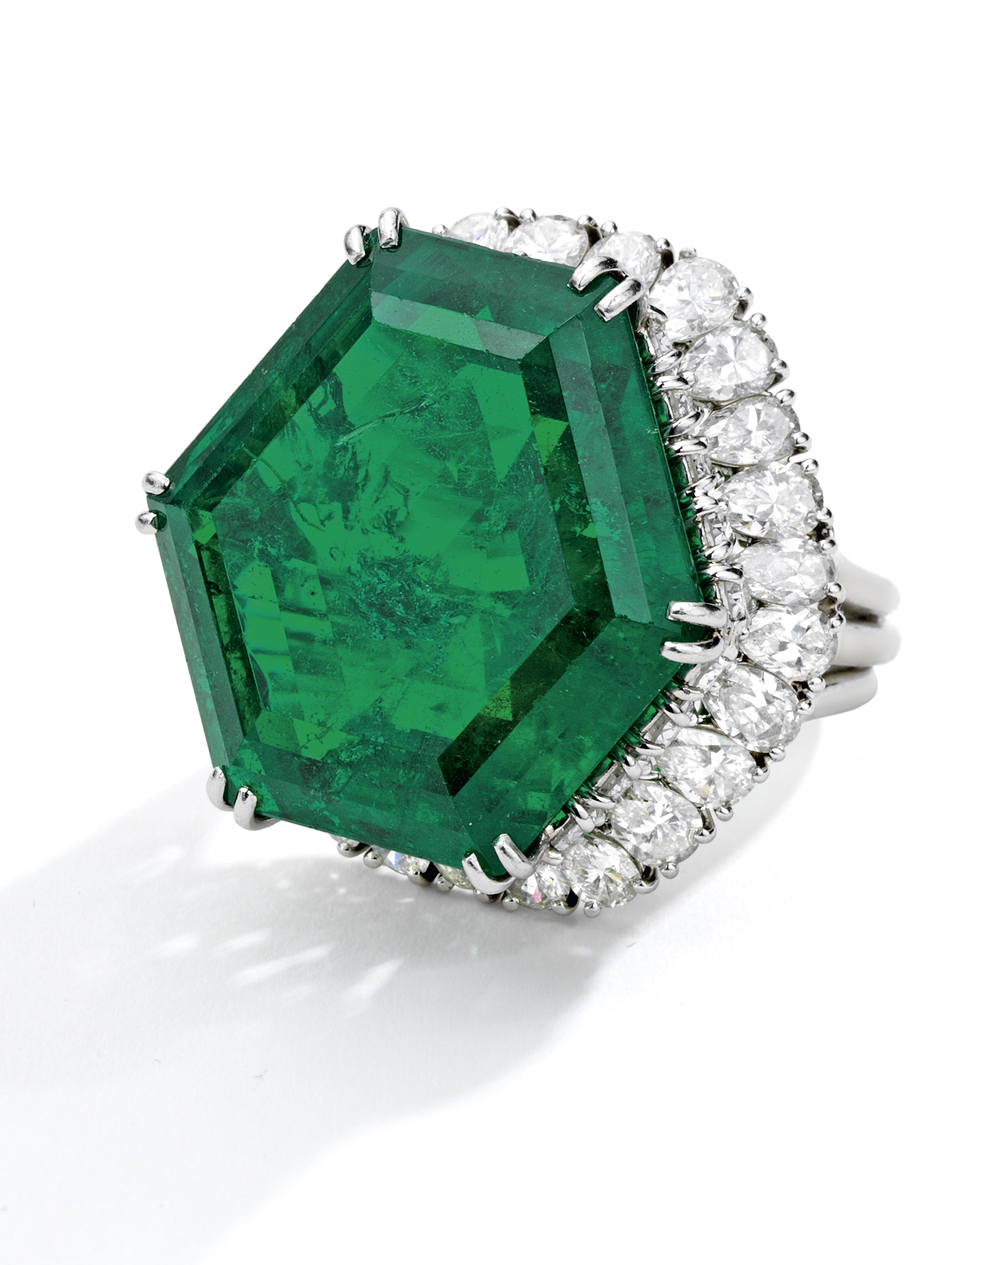 The Magnificent and Legendary Stotesbury Emerald, in a ring by Harry Winston, weighing approximately 34.40 carats.